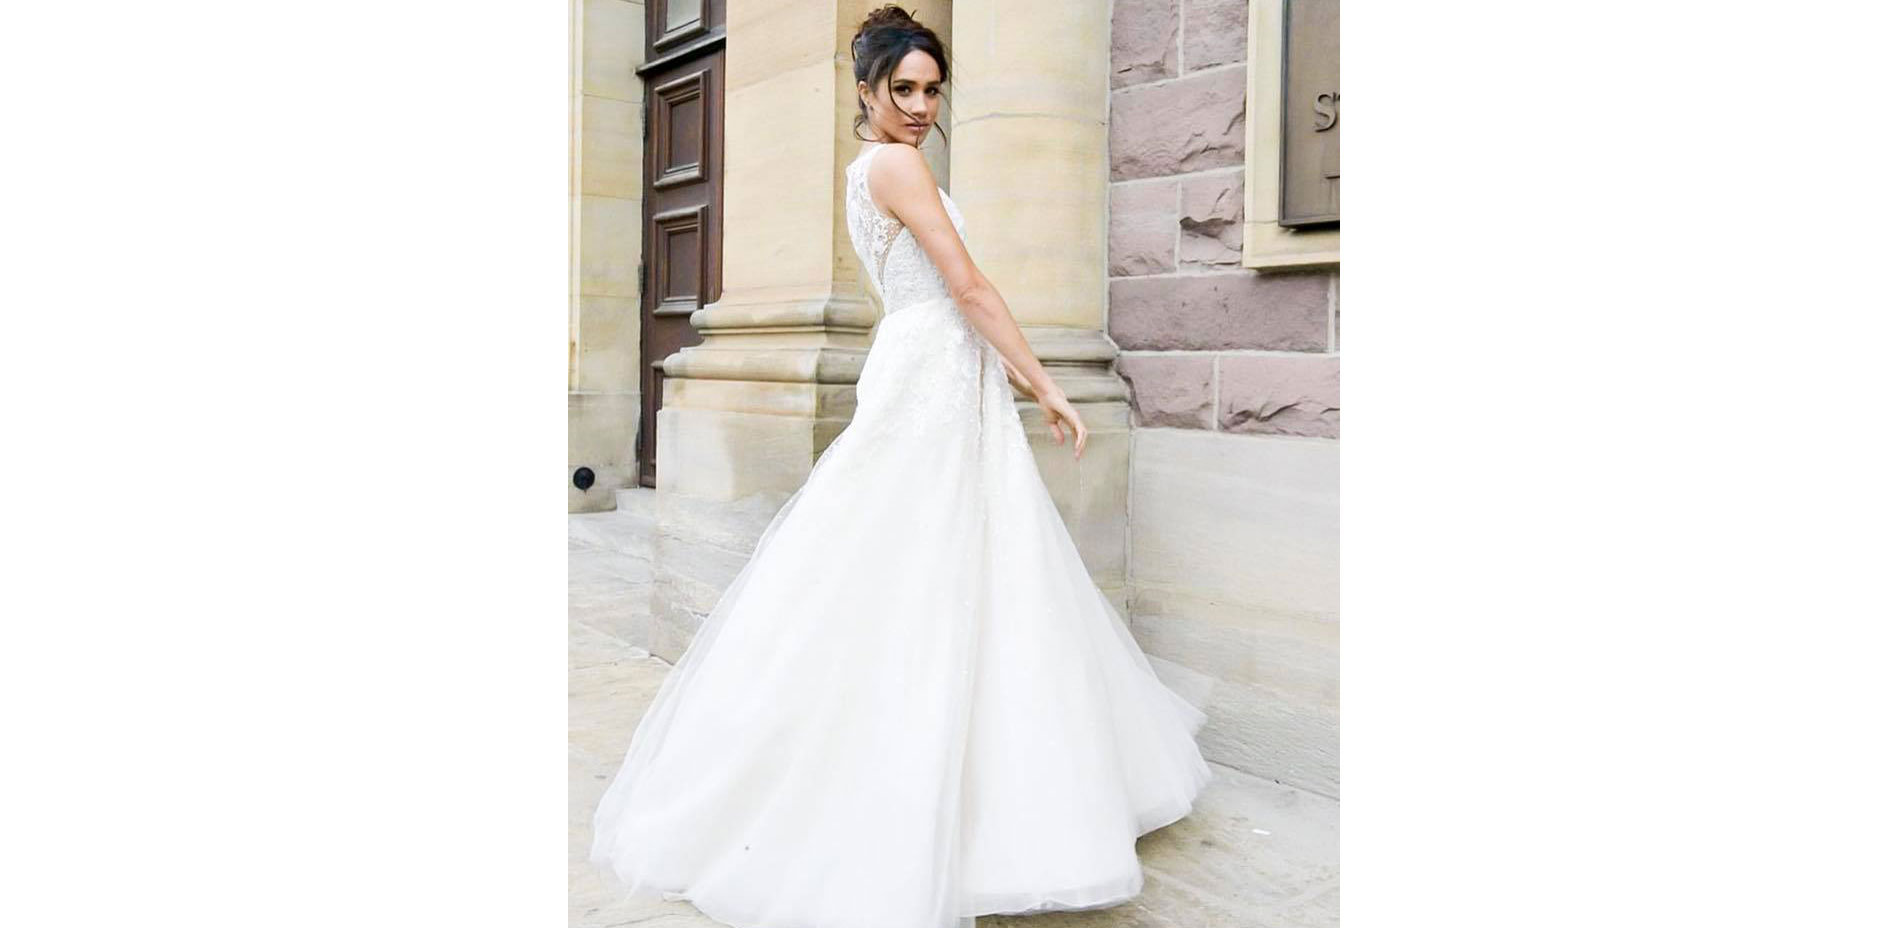 Meghan markle wedding dress style will she wear anne barge bridal meghan markle junglespirit Image collections